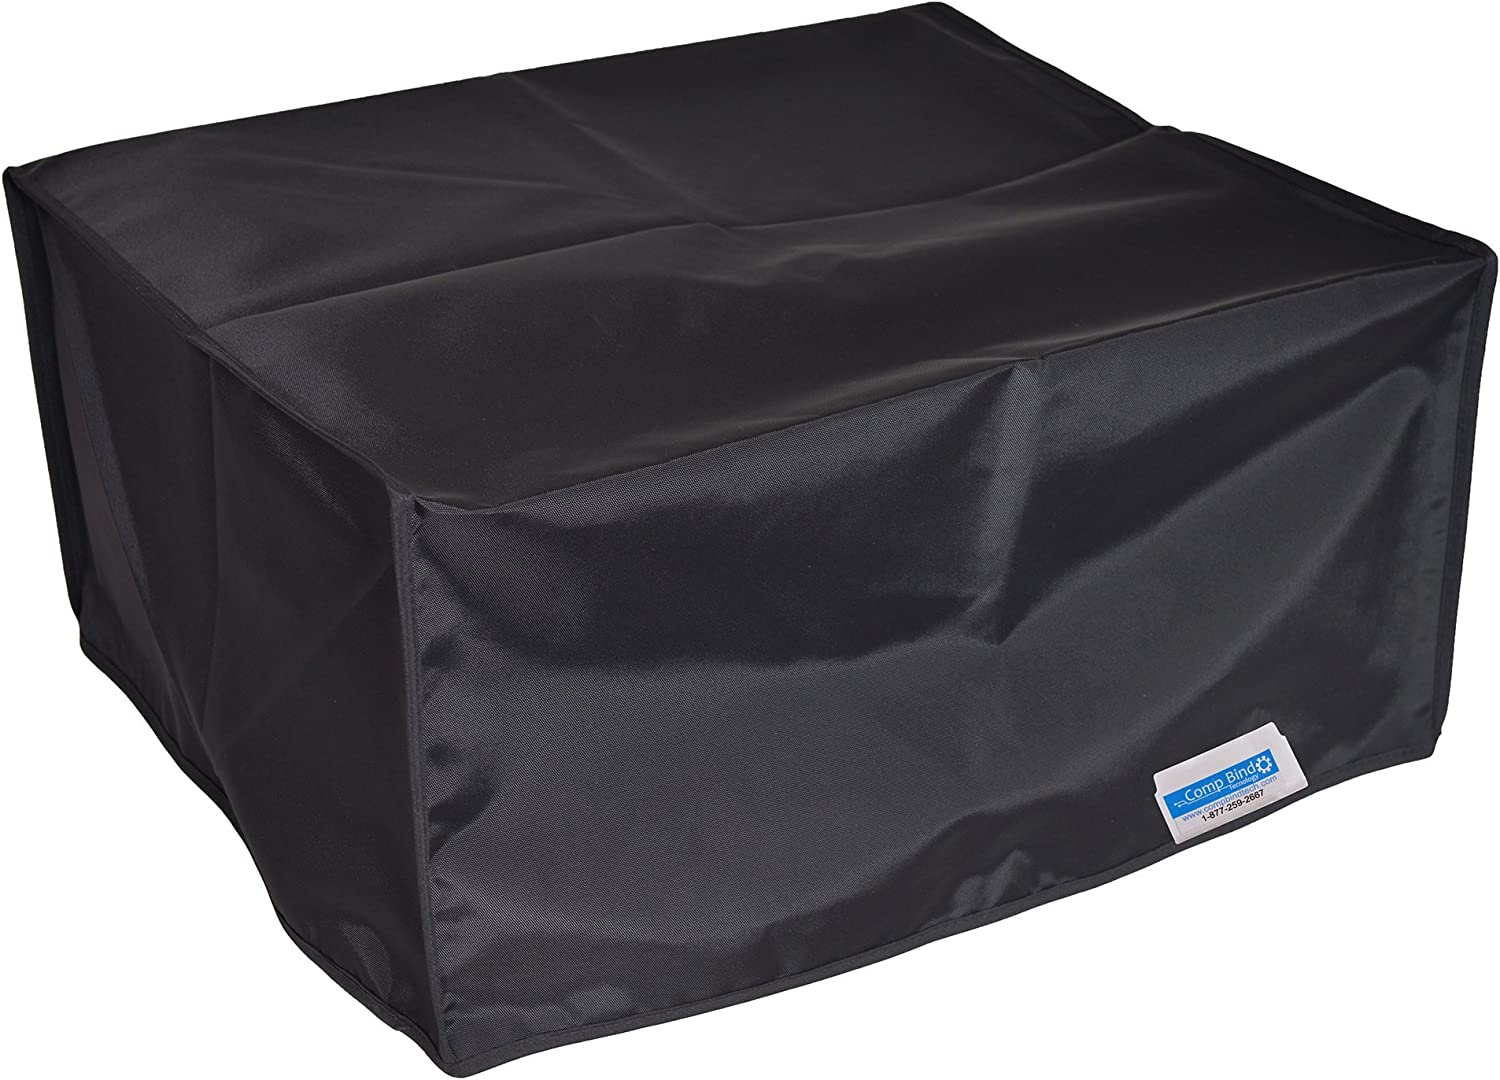 Comp Bind Technology Dust Cover for HP OfficeJet Pro 8610 Printer Black Nylon Anti-Static Dust Cover Dimensions 19.7''W x 18.5''D x 12''H by Comp Bind Technology